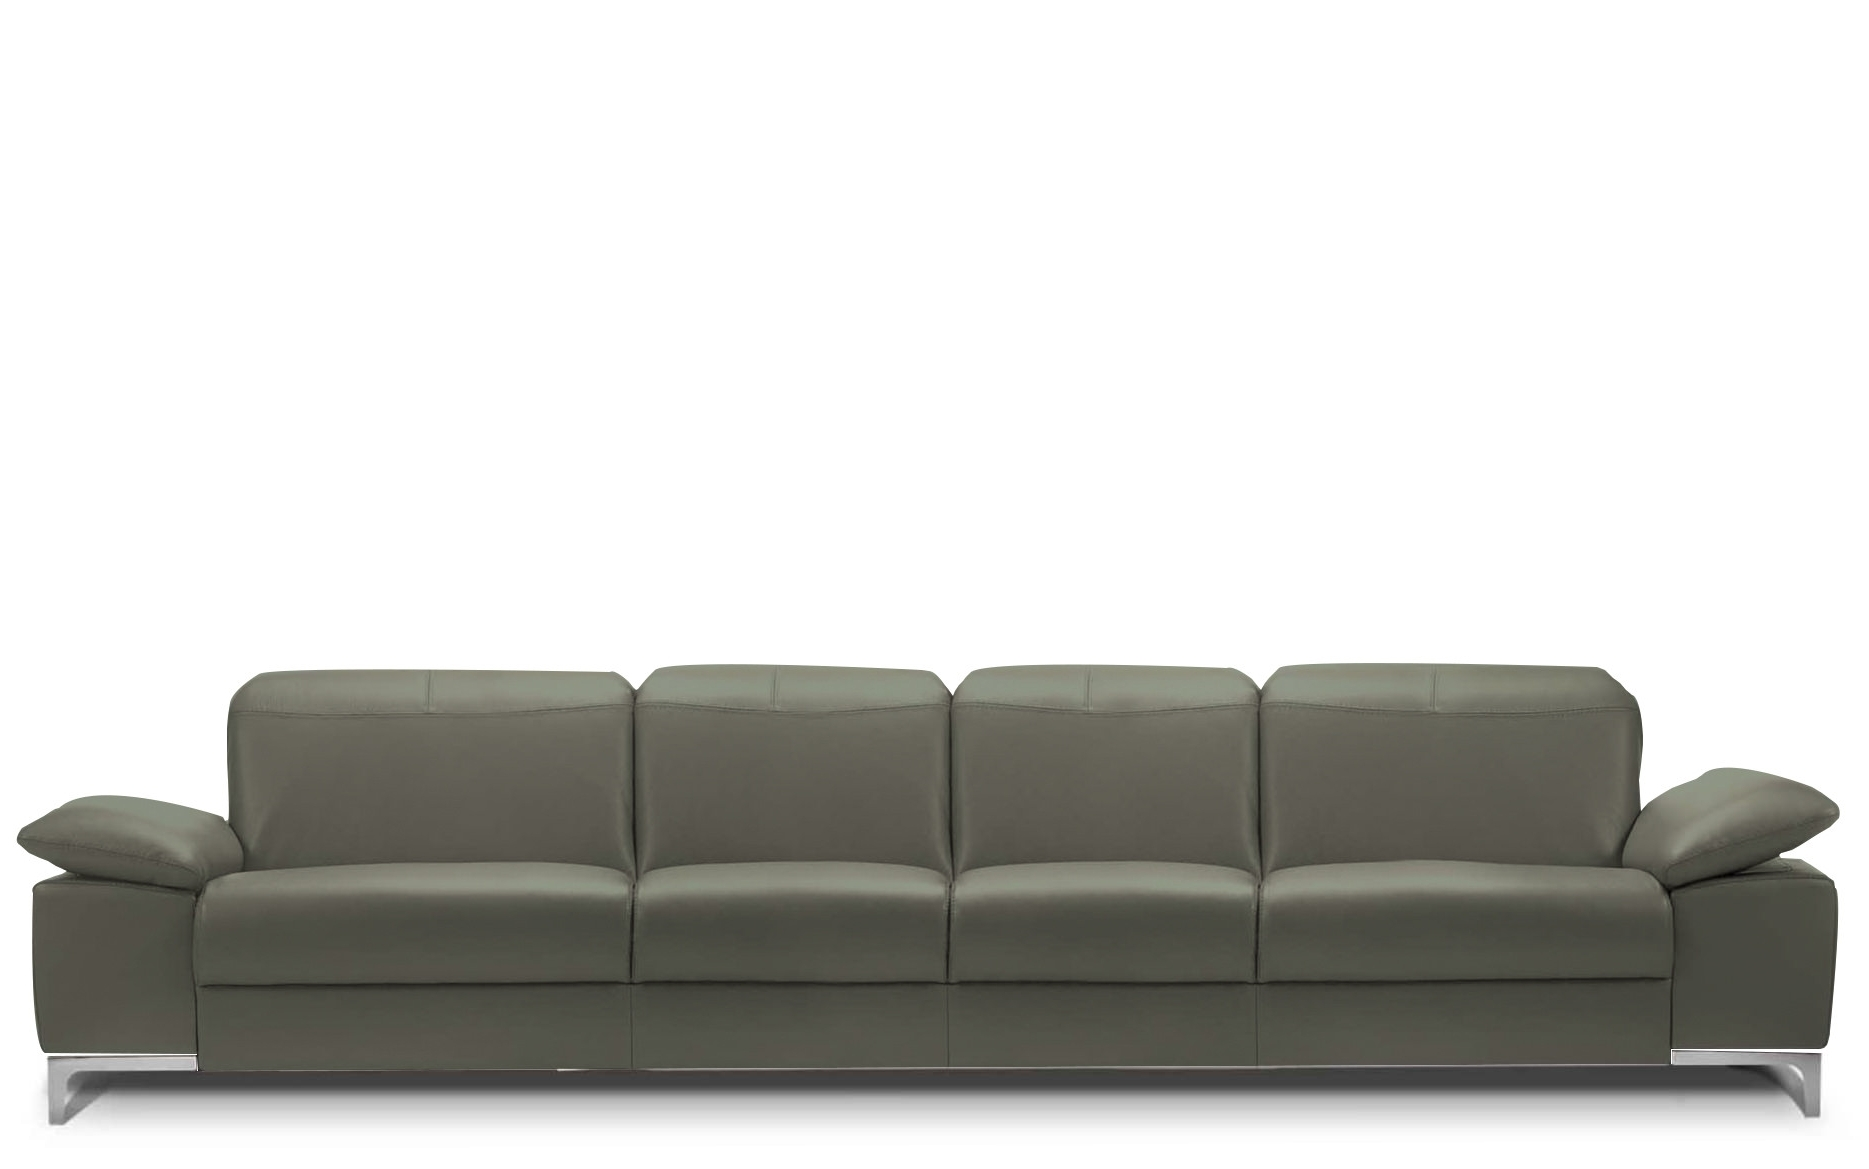 Buy At Kontenta With 4 Seat Leather Sofas (View 10 of 20)